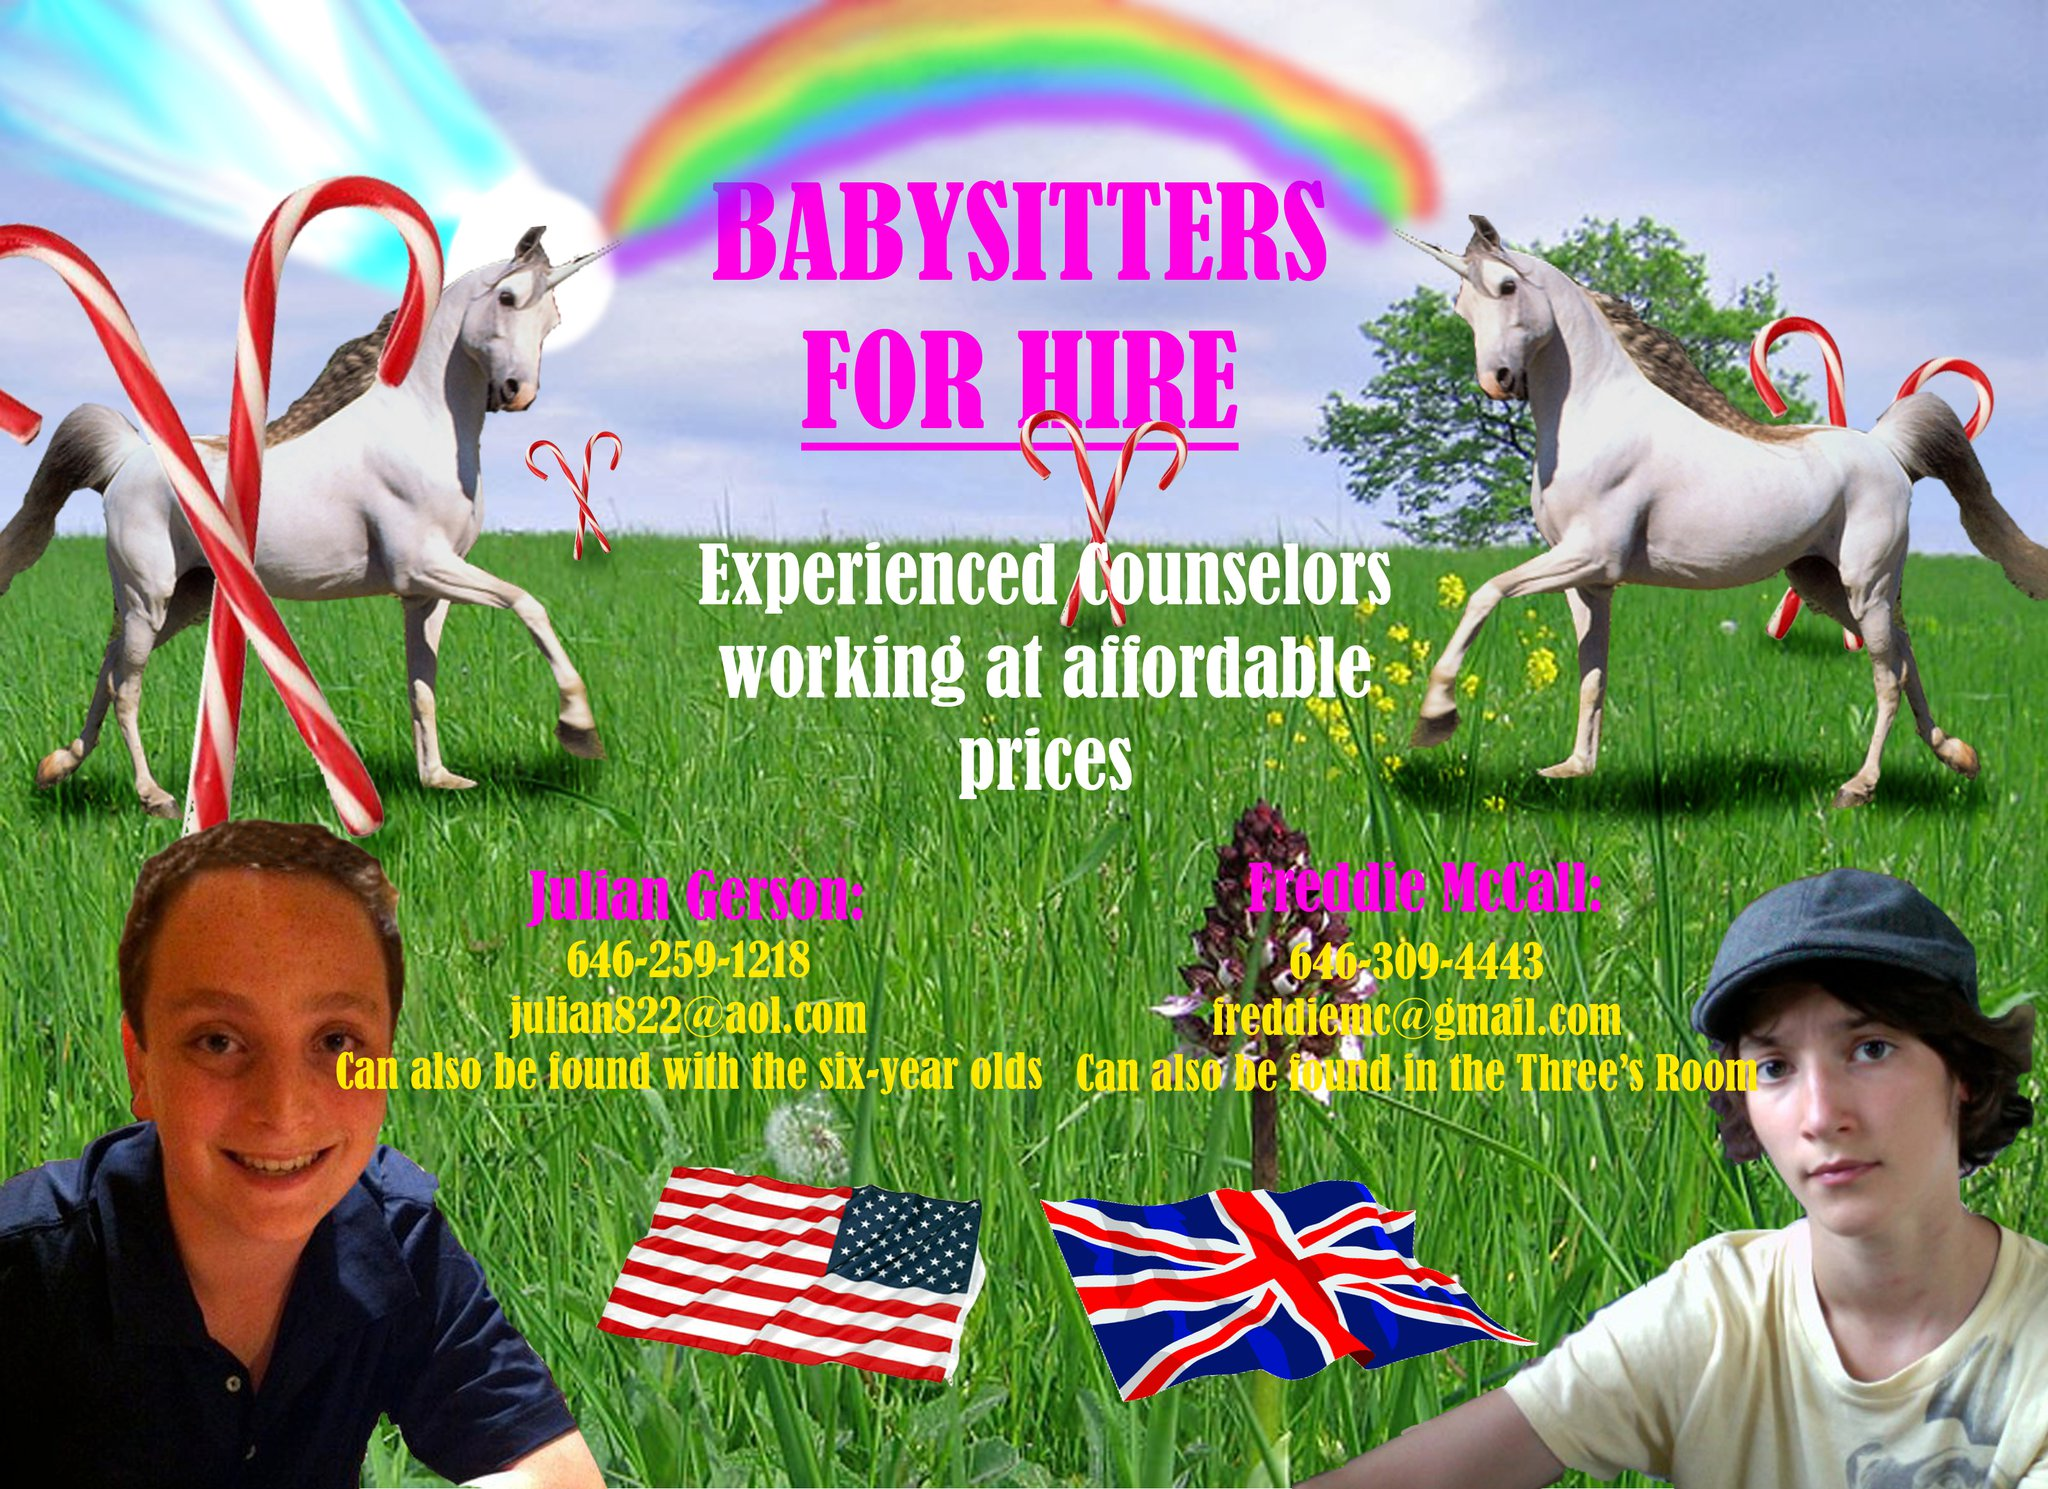 babysitting add doc mittnastaliv tk babysitting add 23 04 2017